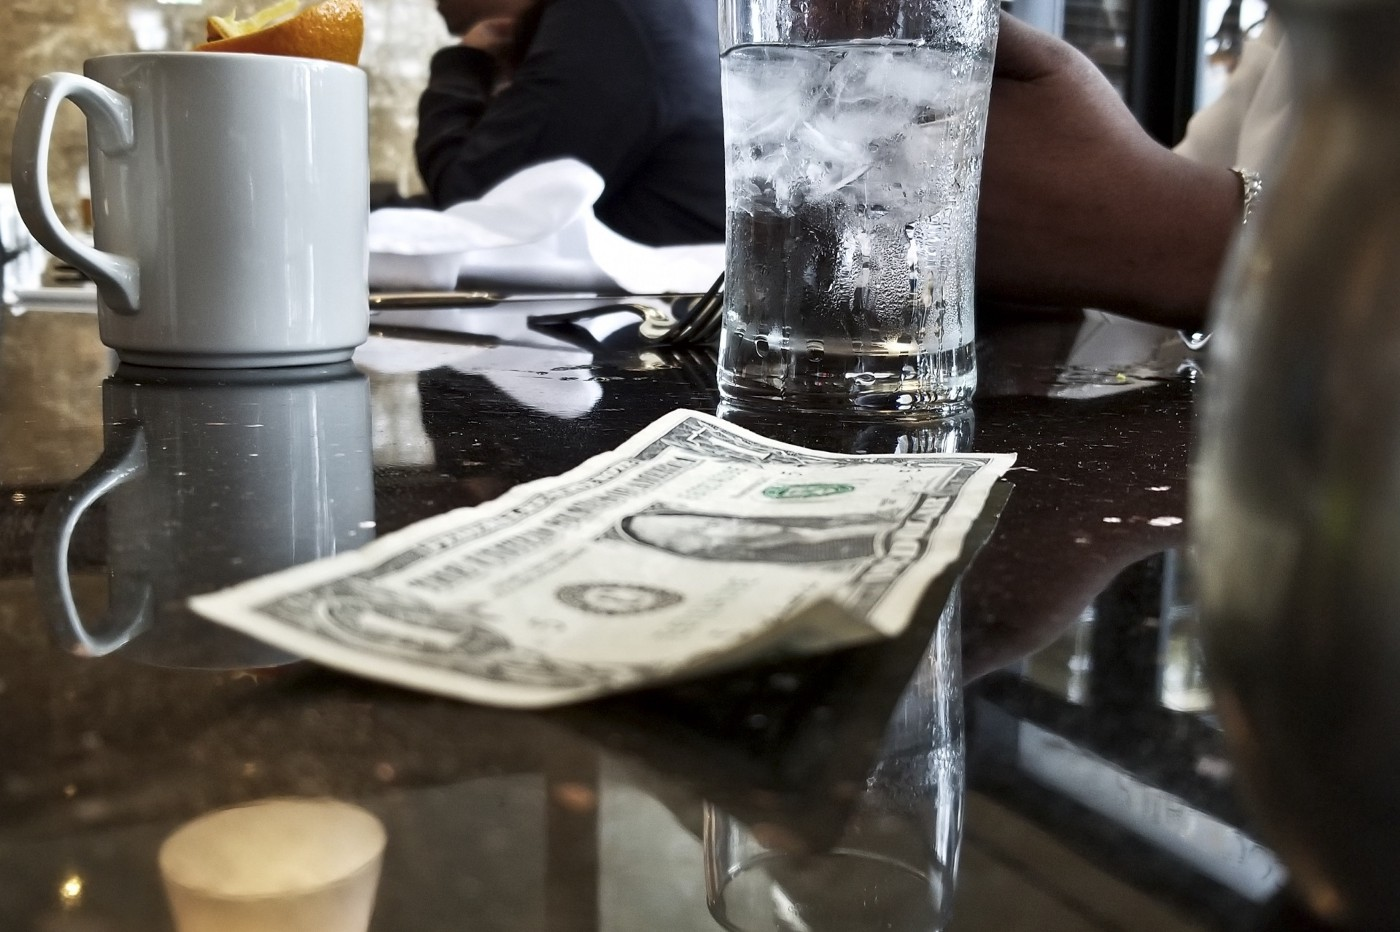 A close up of a dollar bill on a coffee table, next to a coffee mug and a glass of water.